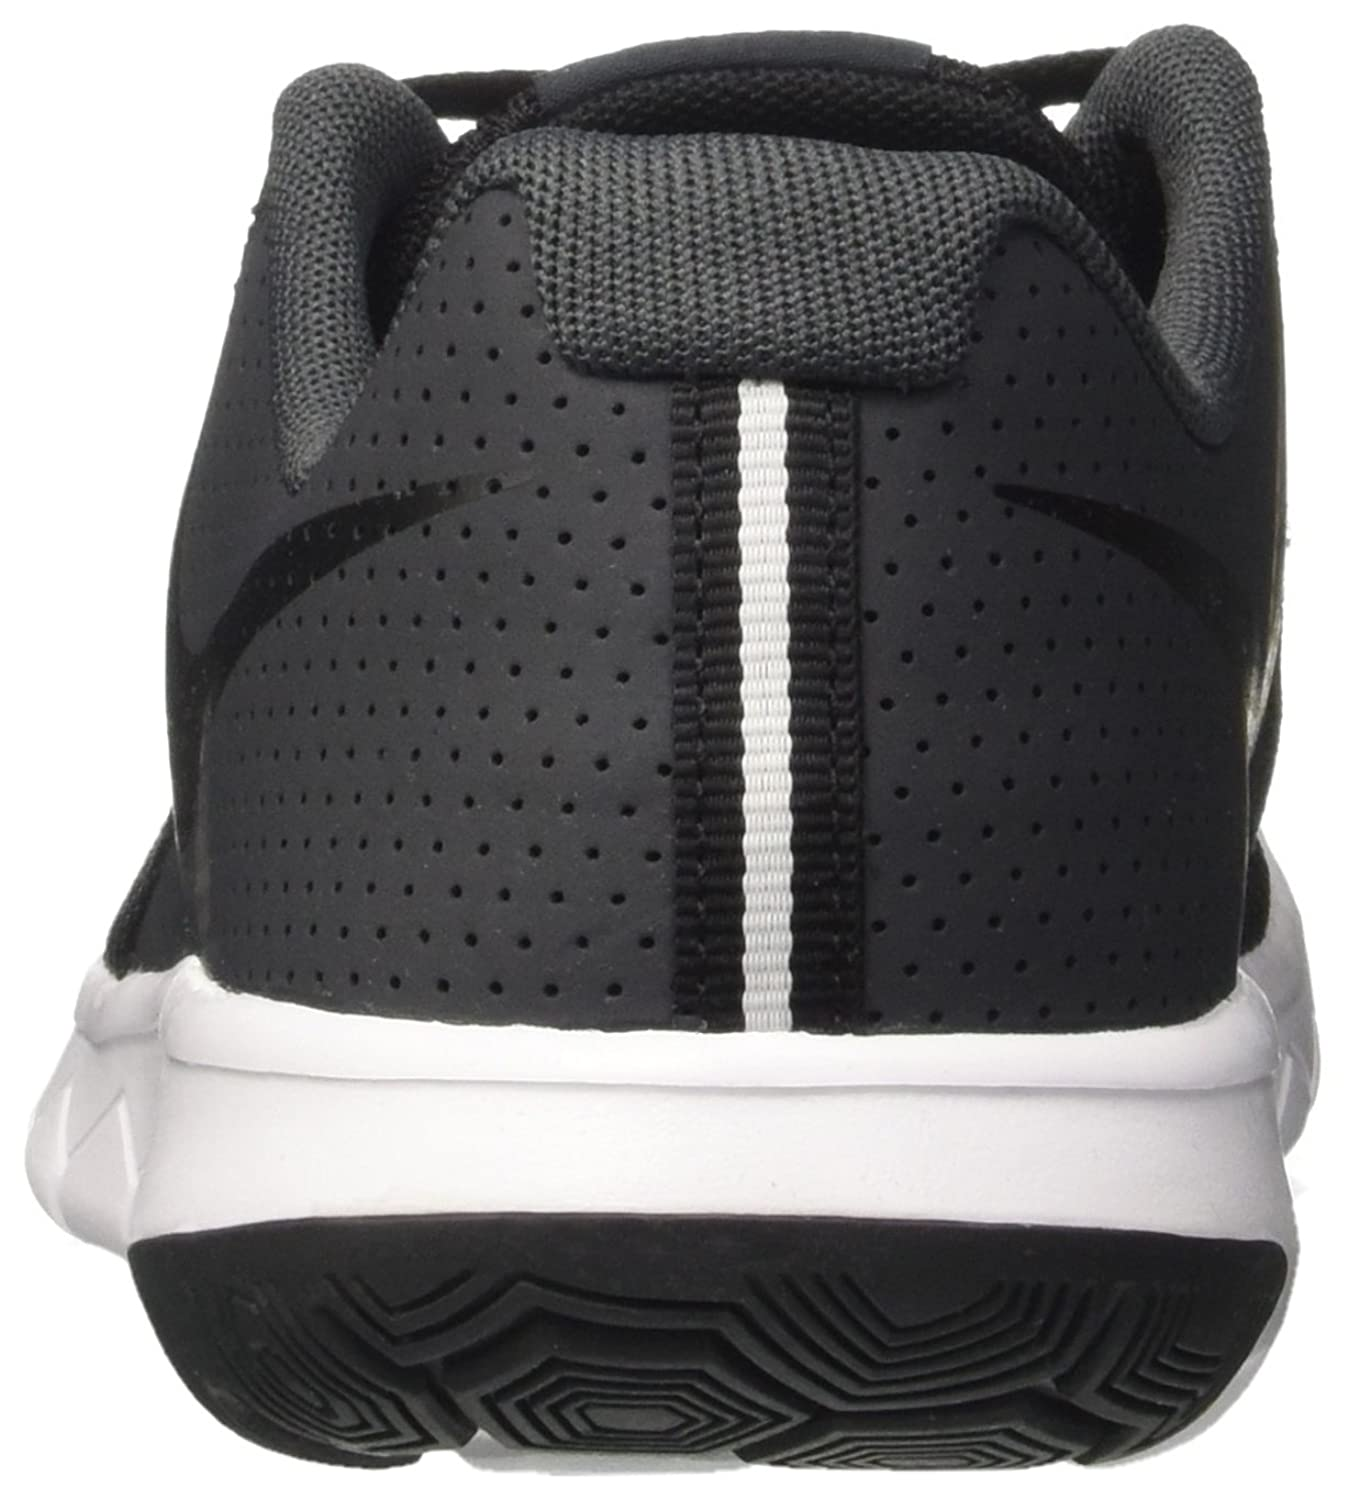 cheap for discount 4140f 1cb90 Nike Flex Experience 5 19968 (GS), Chaussures Nike Flex de Running  Entrainement Homme